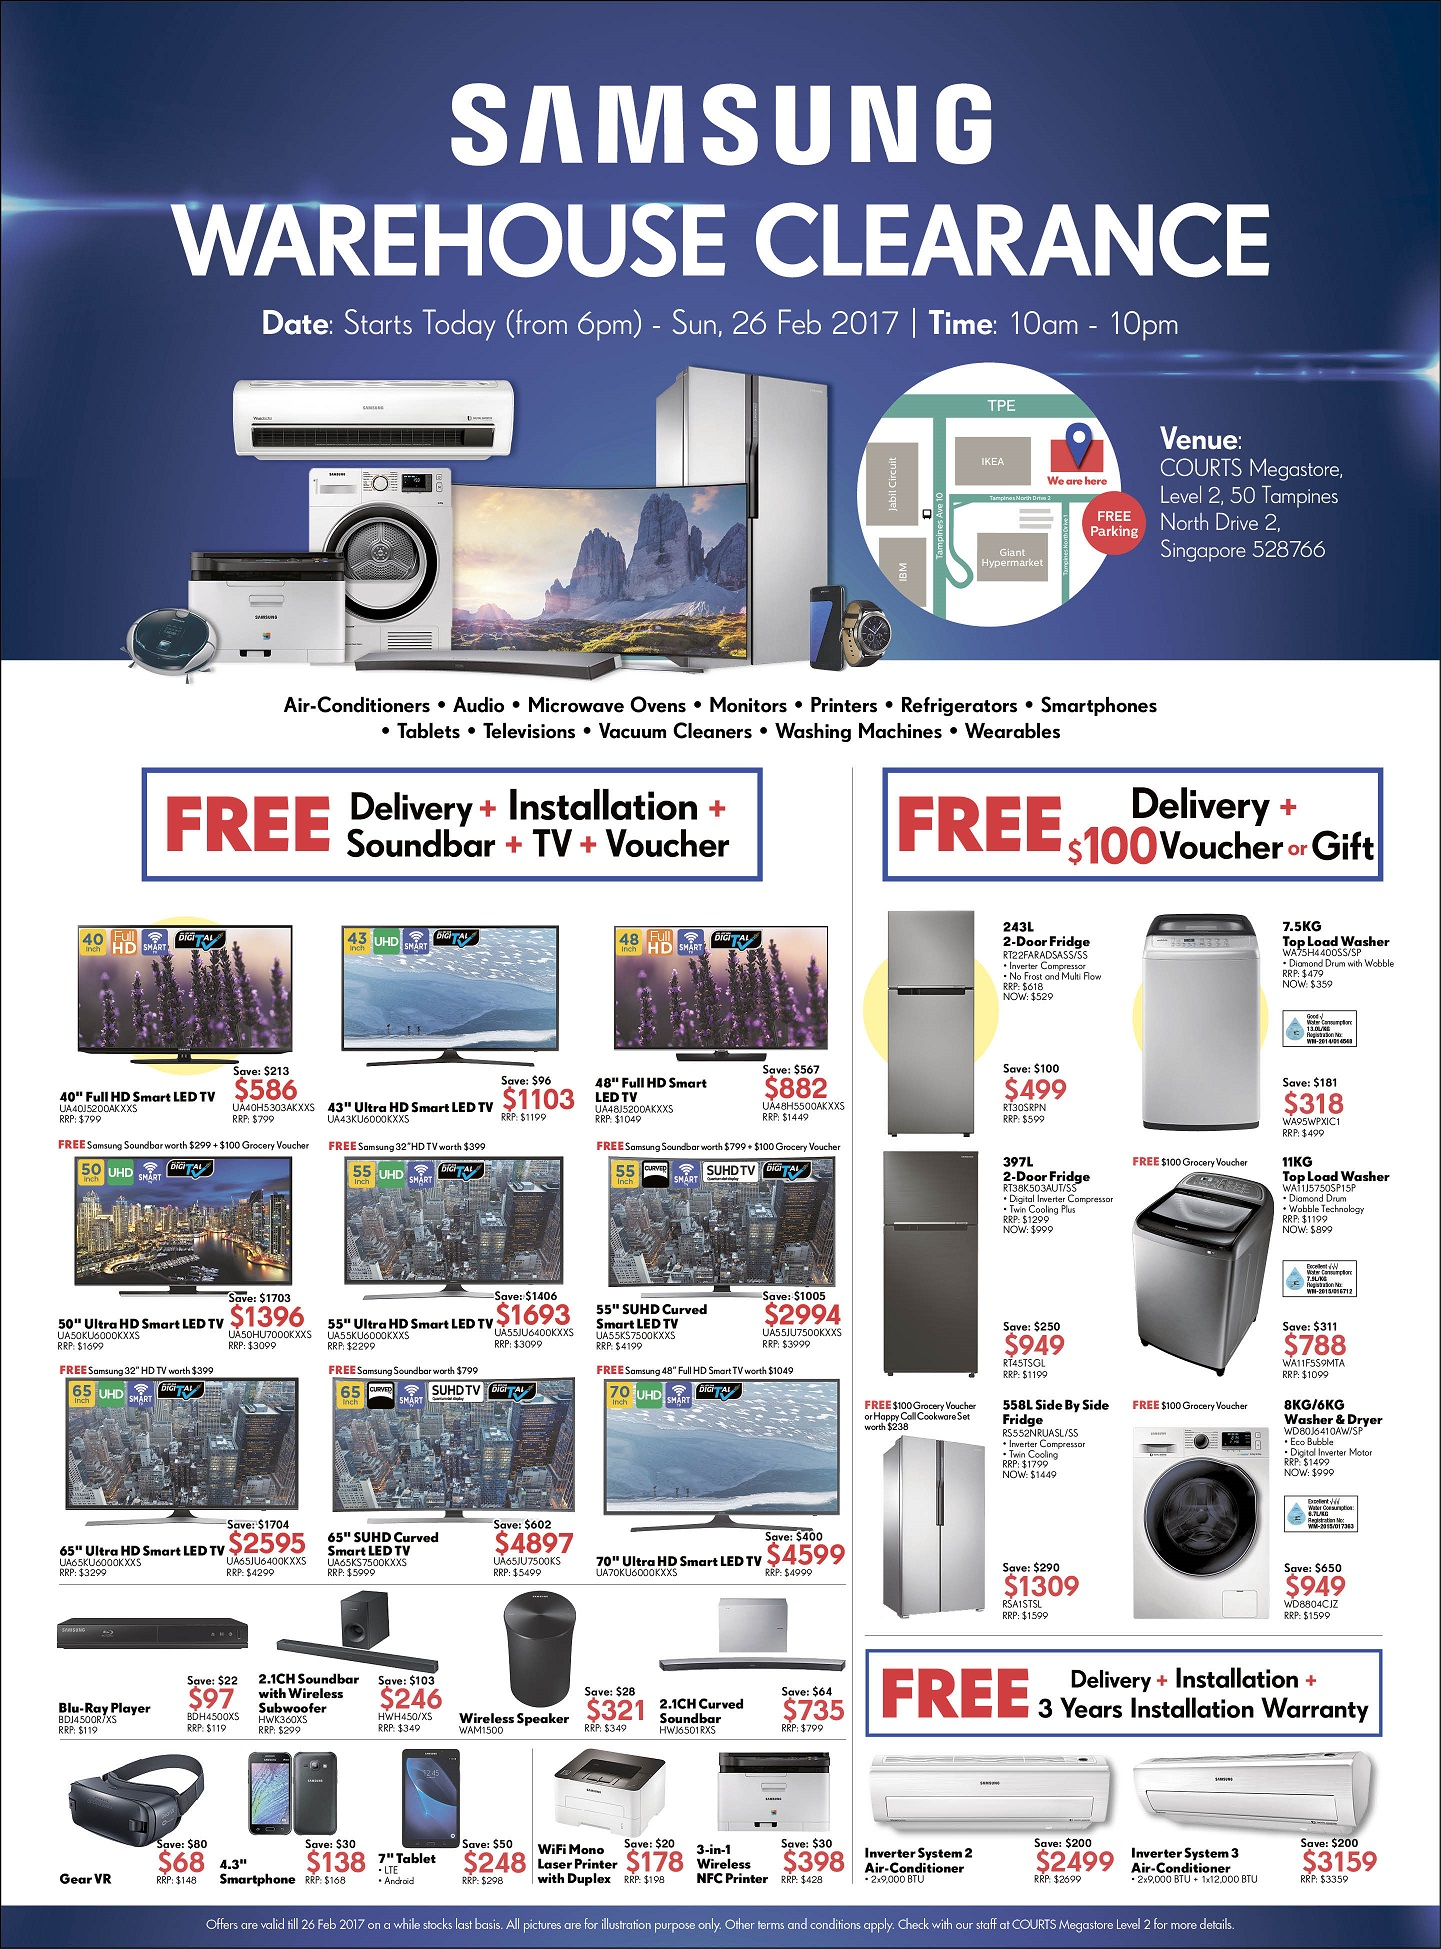 Samsung+Warehouse+Clearance+2017